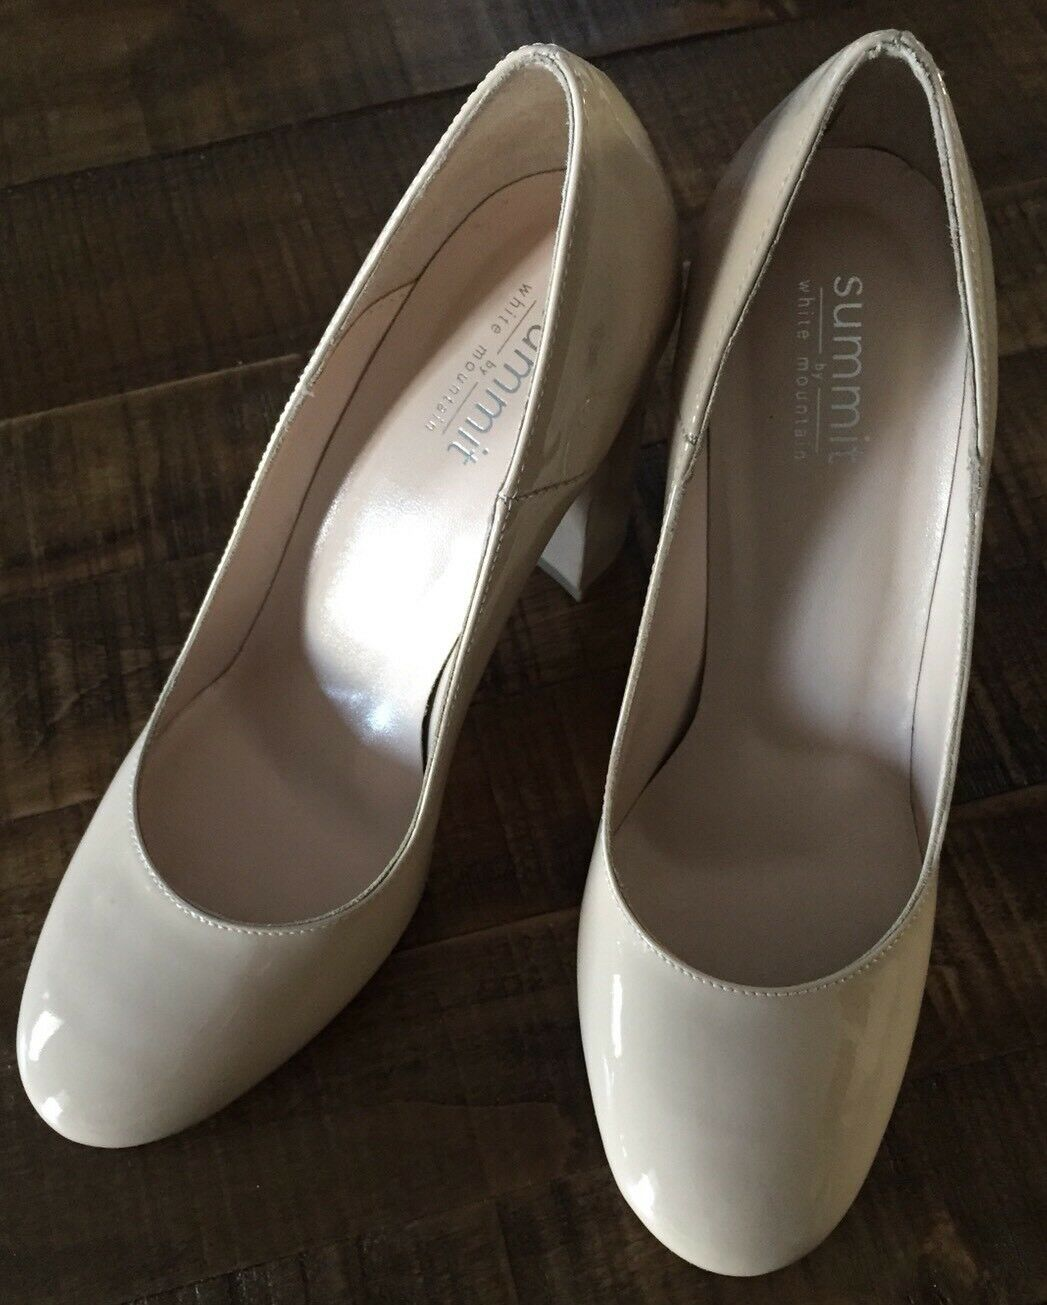 Summit by Weiß Mountain Aggie Nude Patent Pump Pump Pump 38M US 8M 15a943